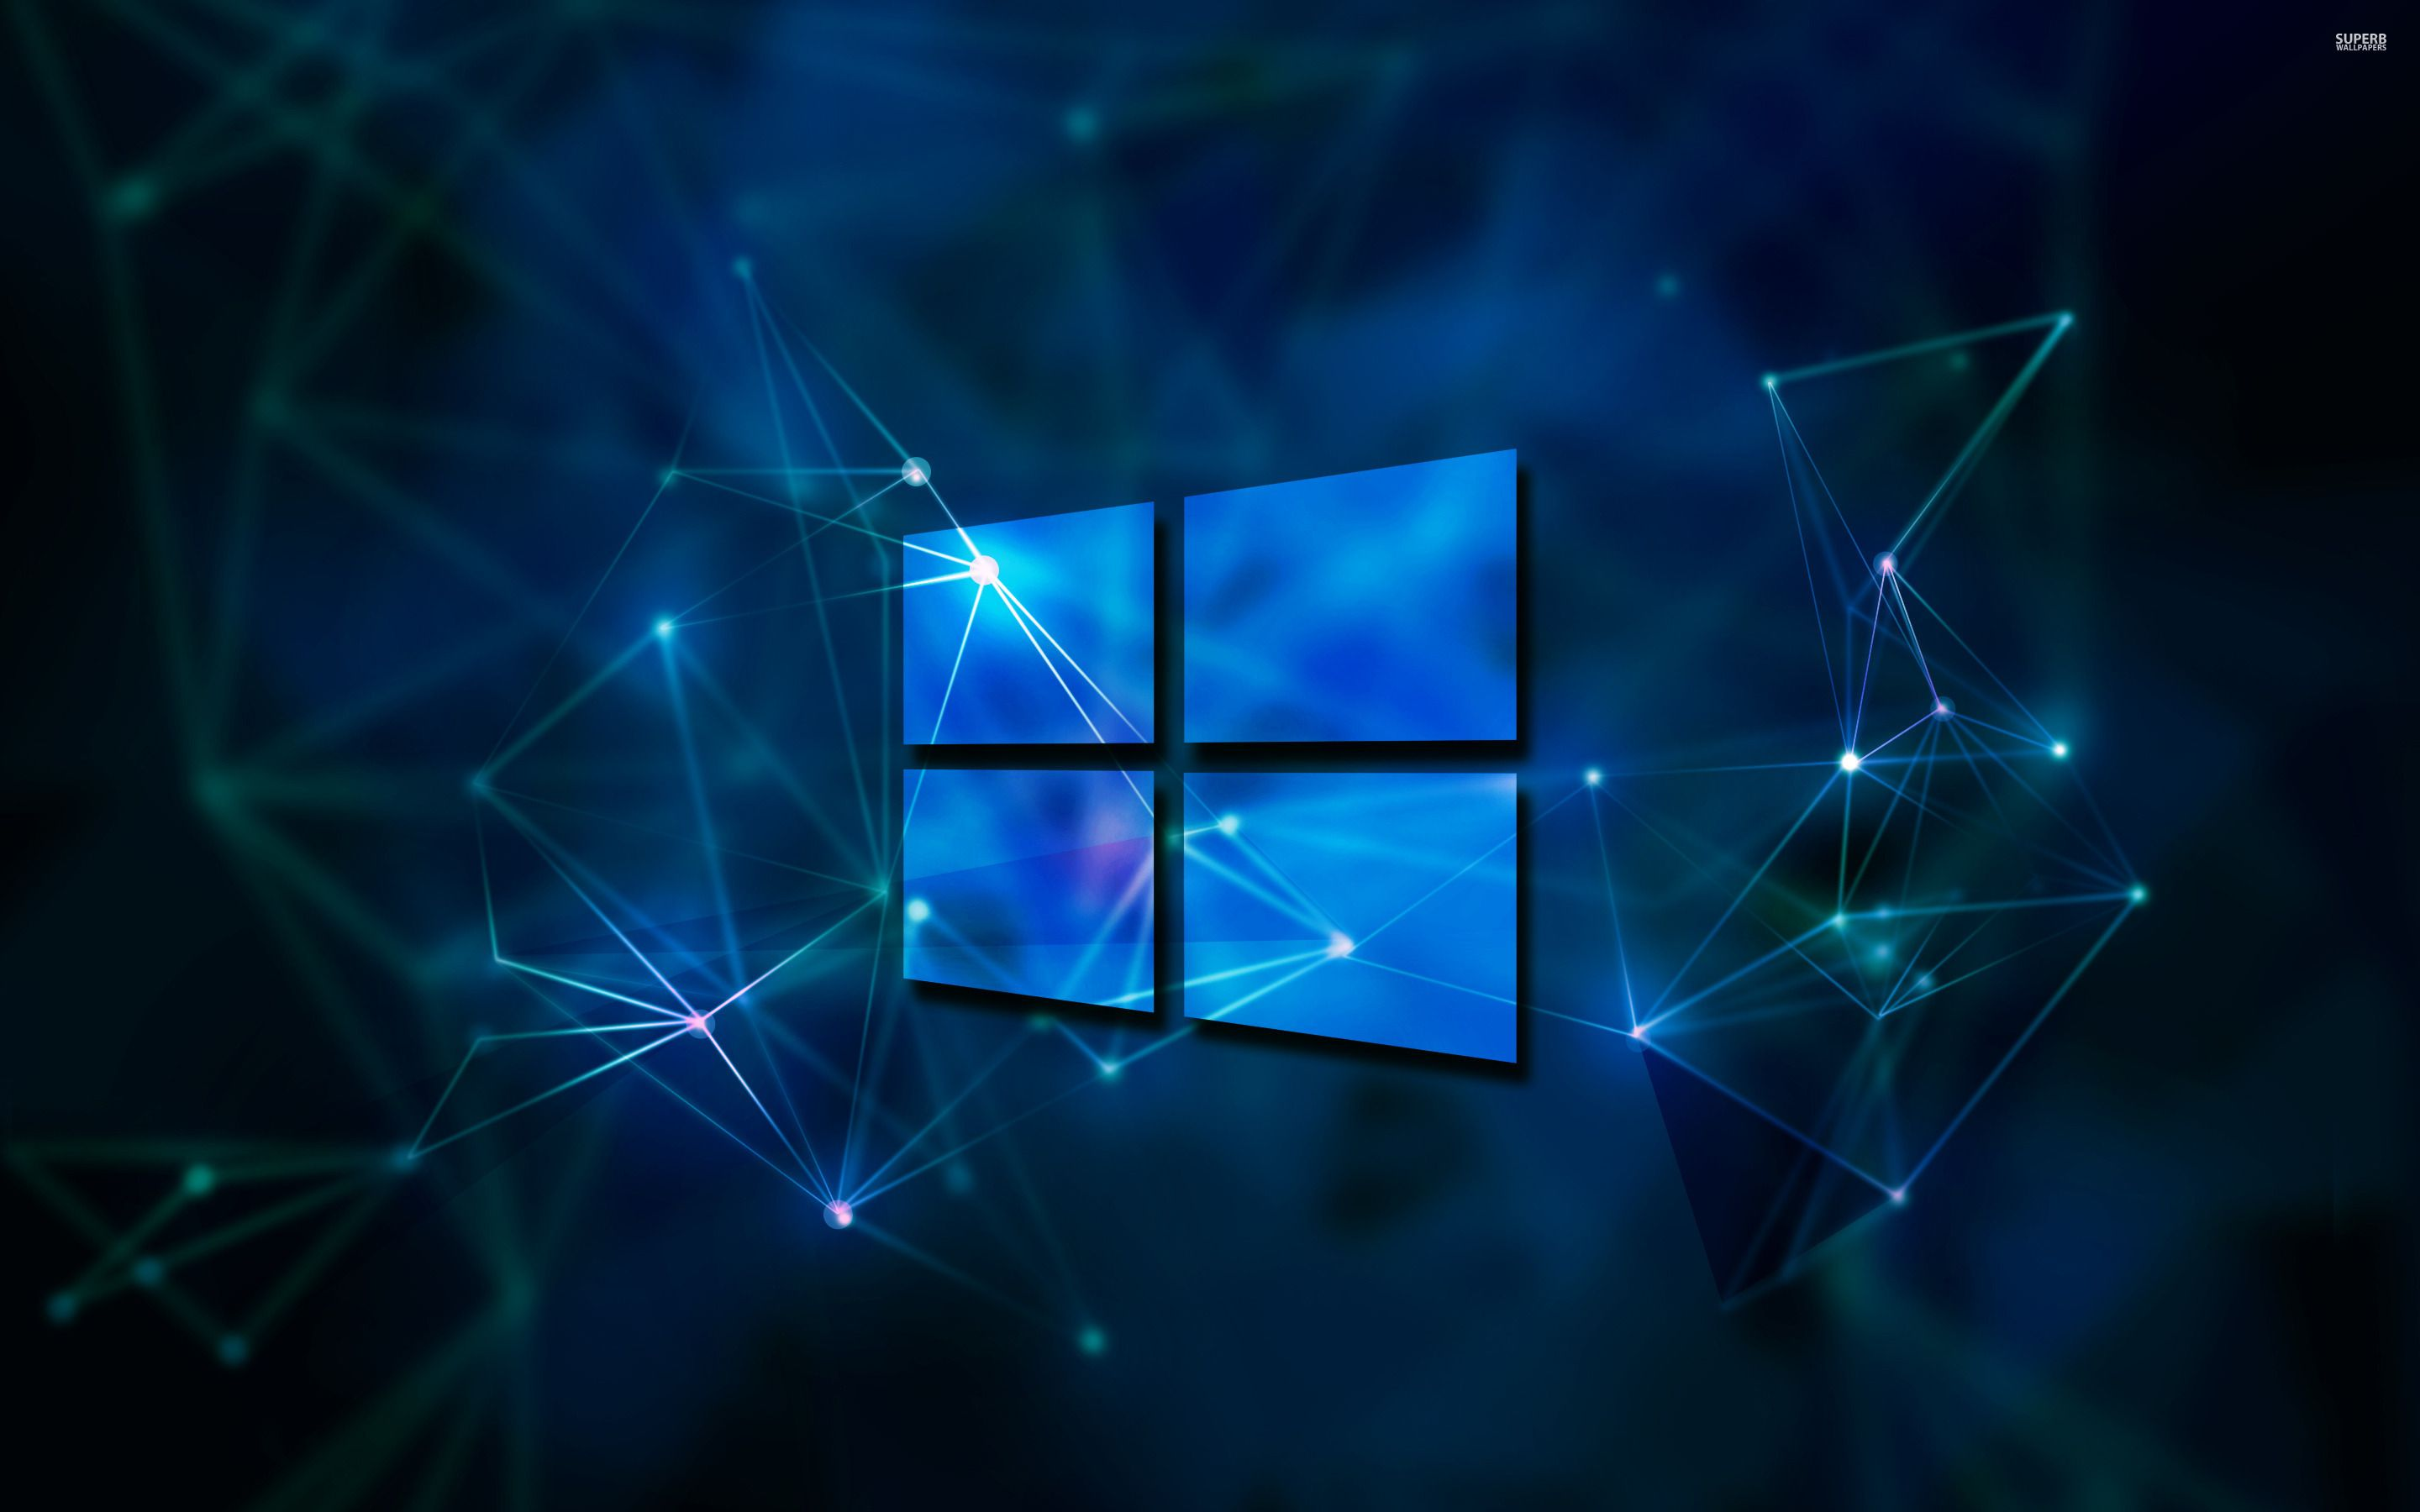 Windows Wallpapers HD Desktop Backgrounds Images And